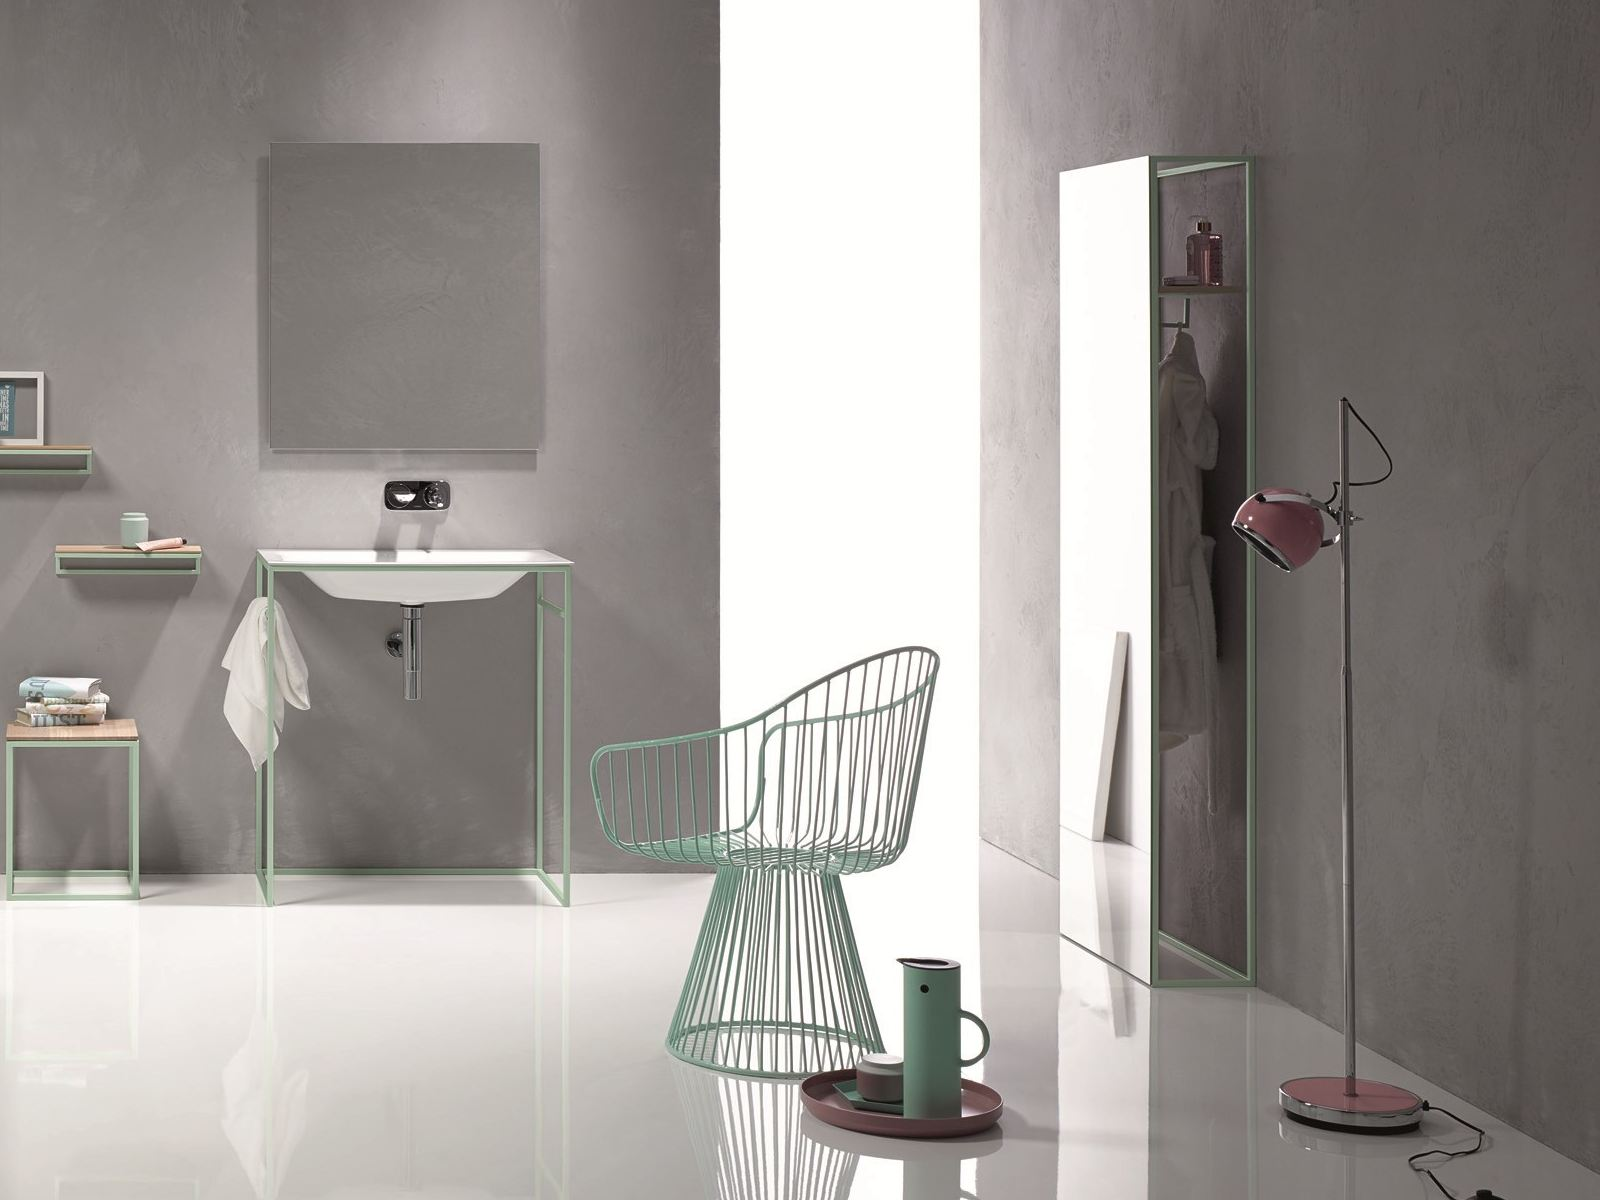 Bettelux shape miroir by bette design tesseraux partner for Bette salle de bain